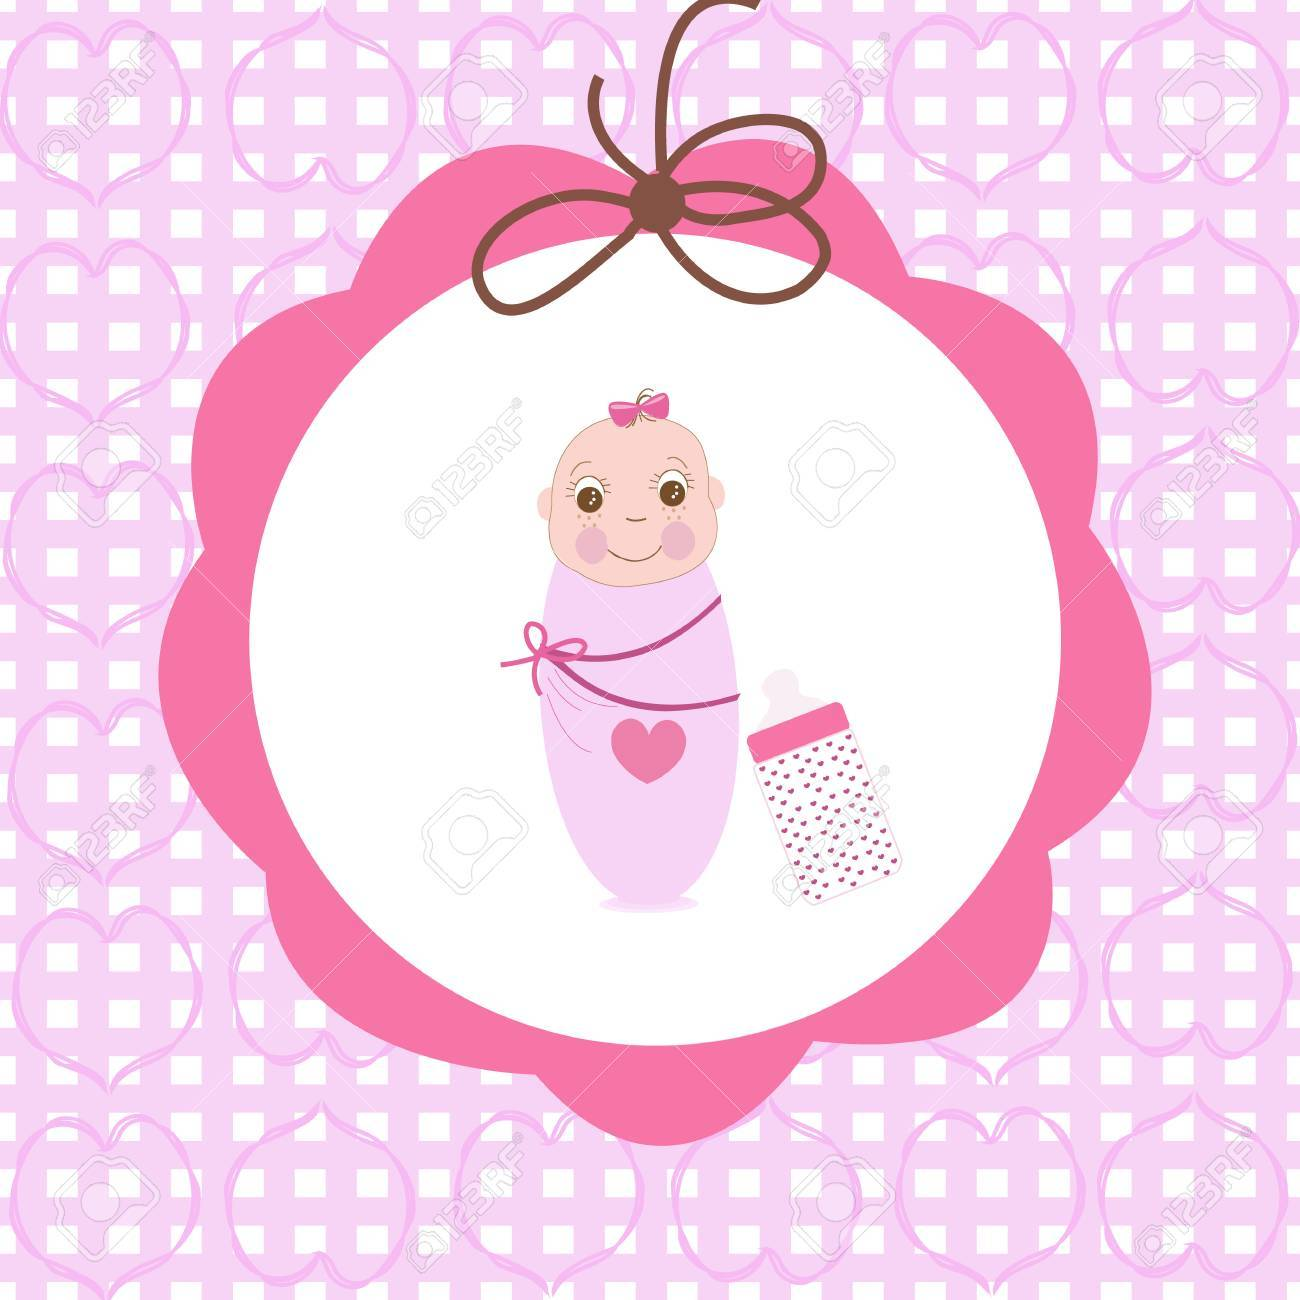 Swaddle baby girl greeting card with bottle royalty free cliparts swaddle baby girl greeting card with bottle stock vector 40314679 kristyandbryce Images